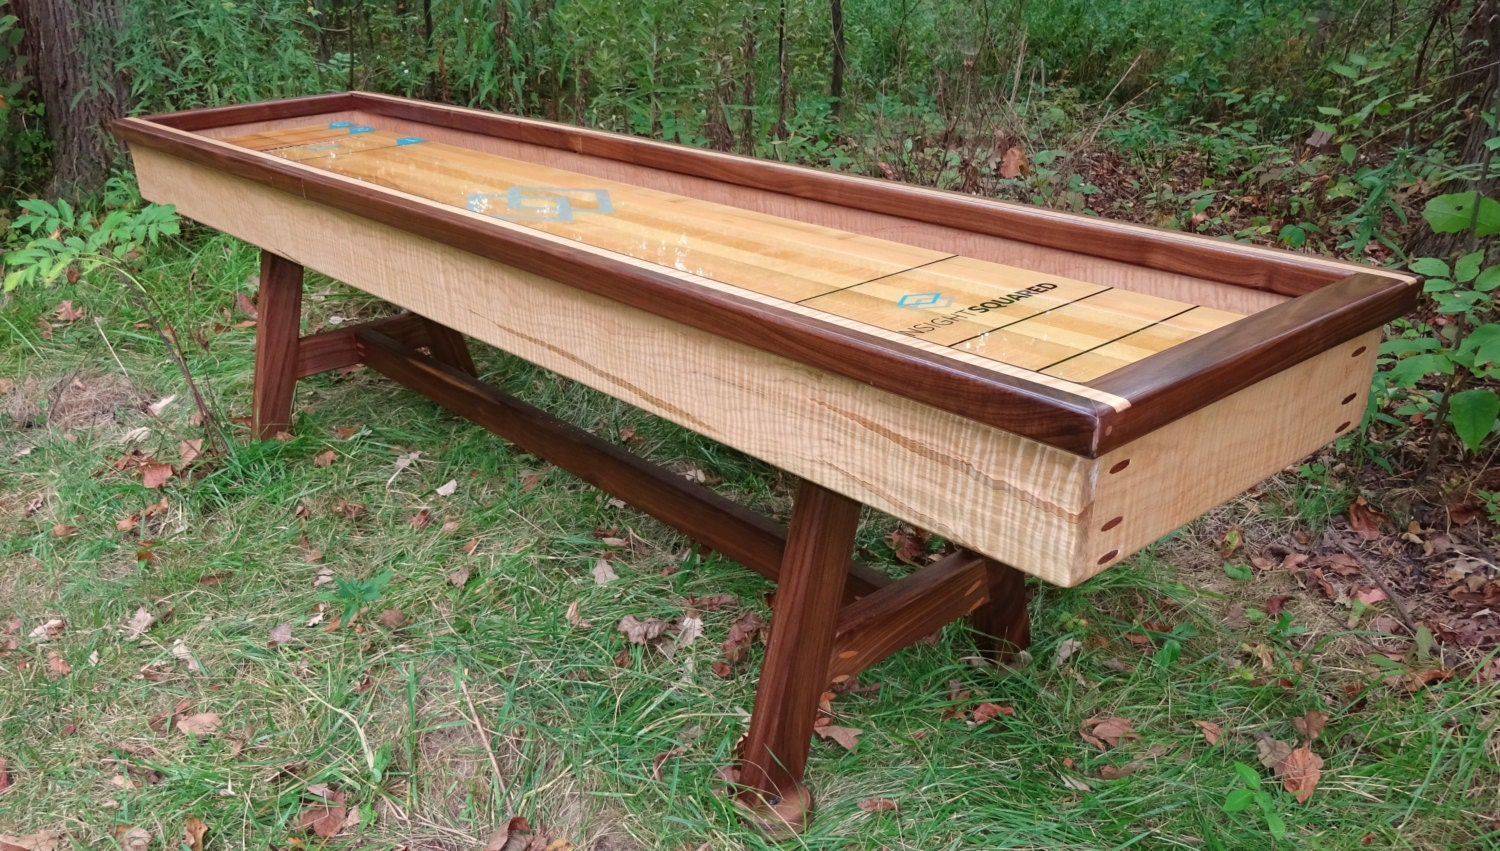 Tiger Maple Shuffleboard Table 9 Foot Or Curling Table Etsy